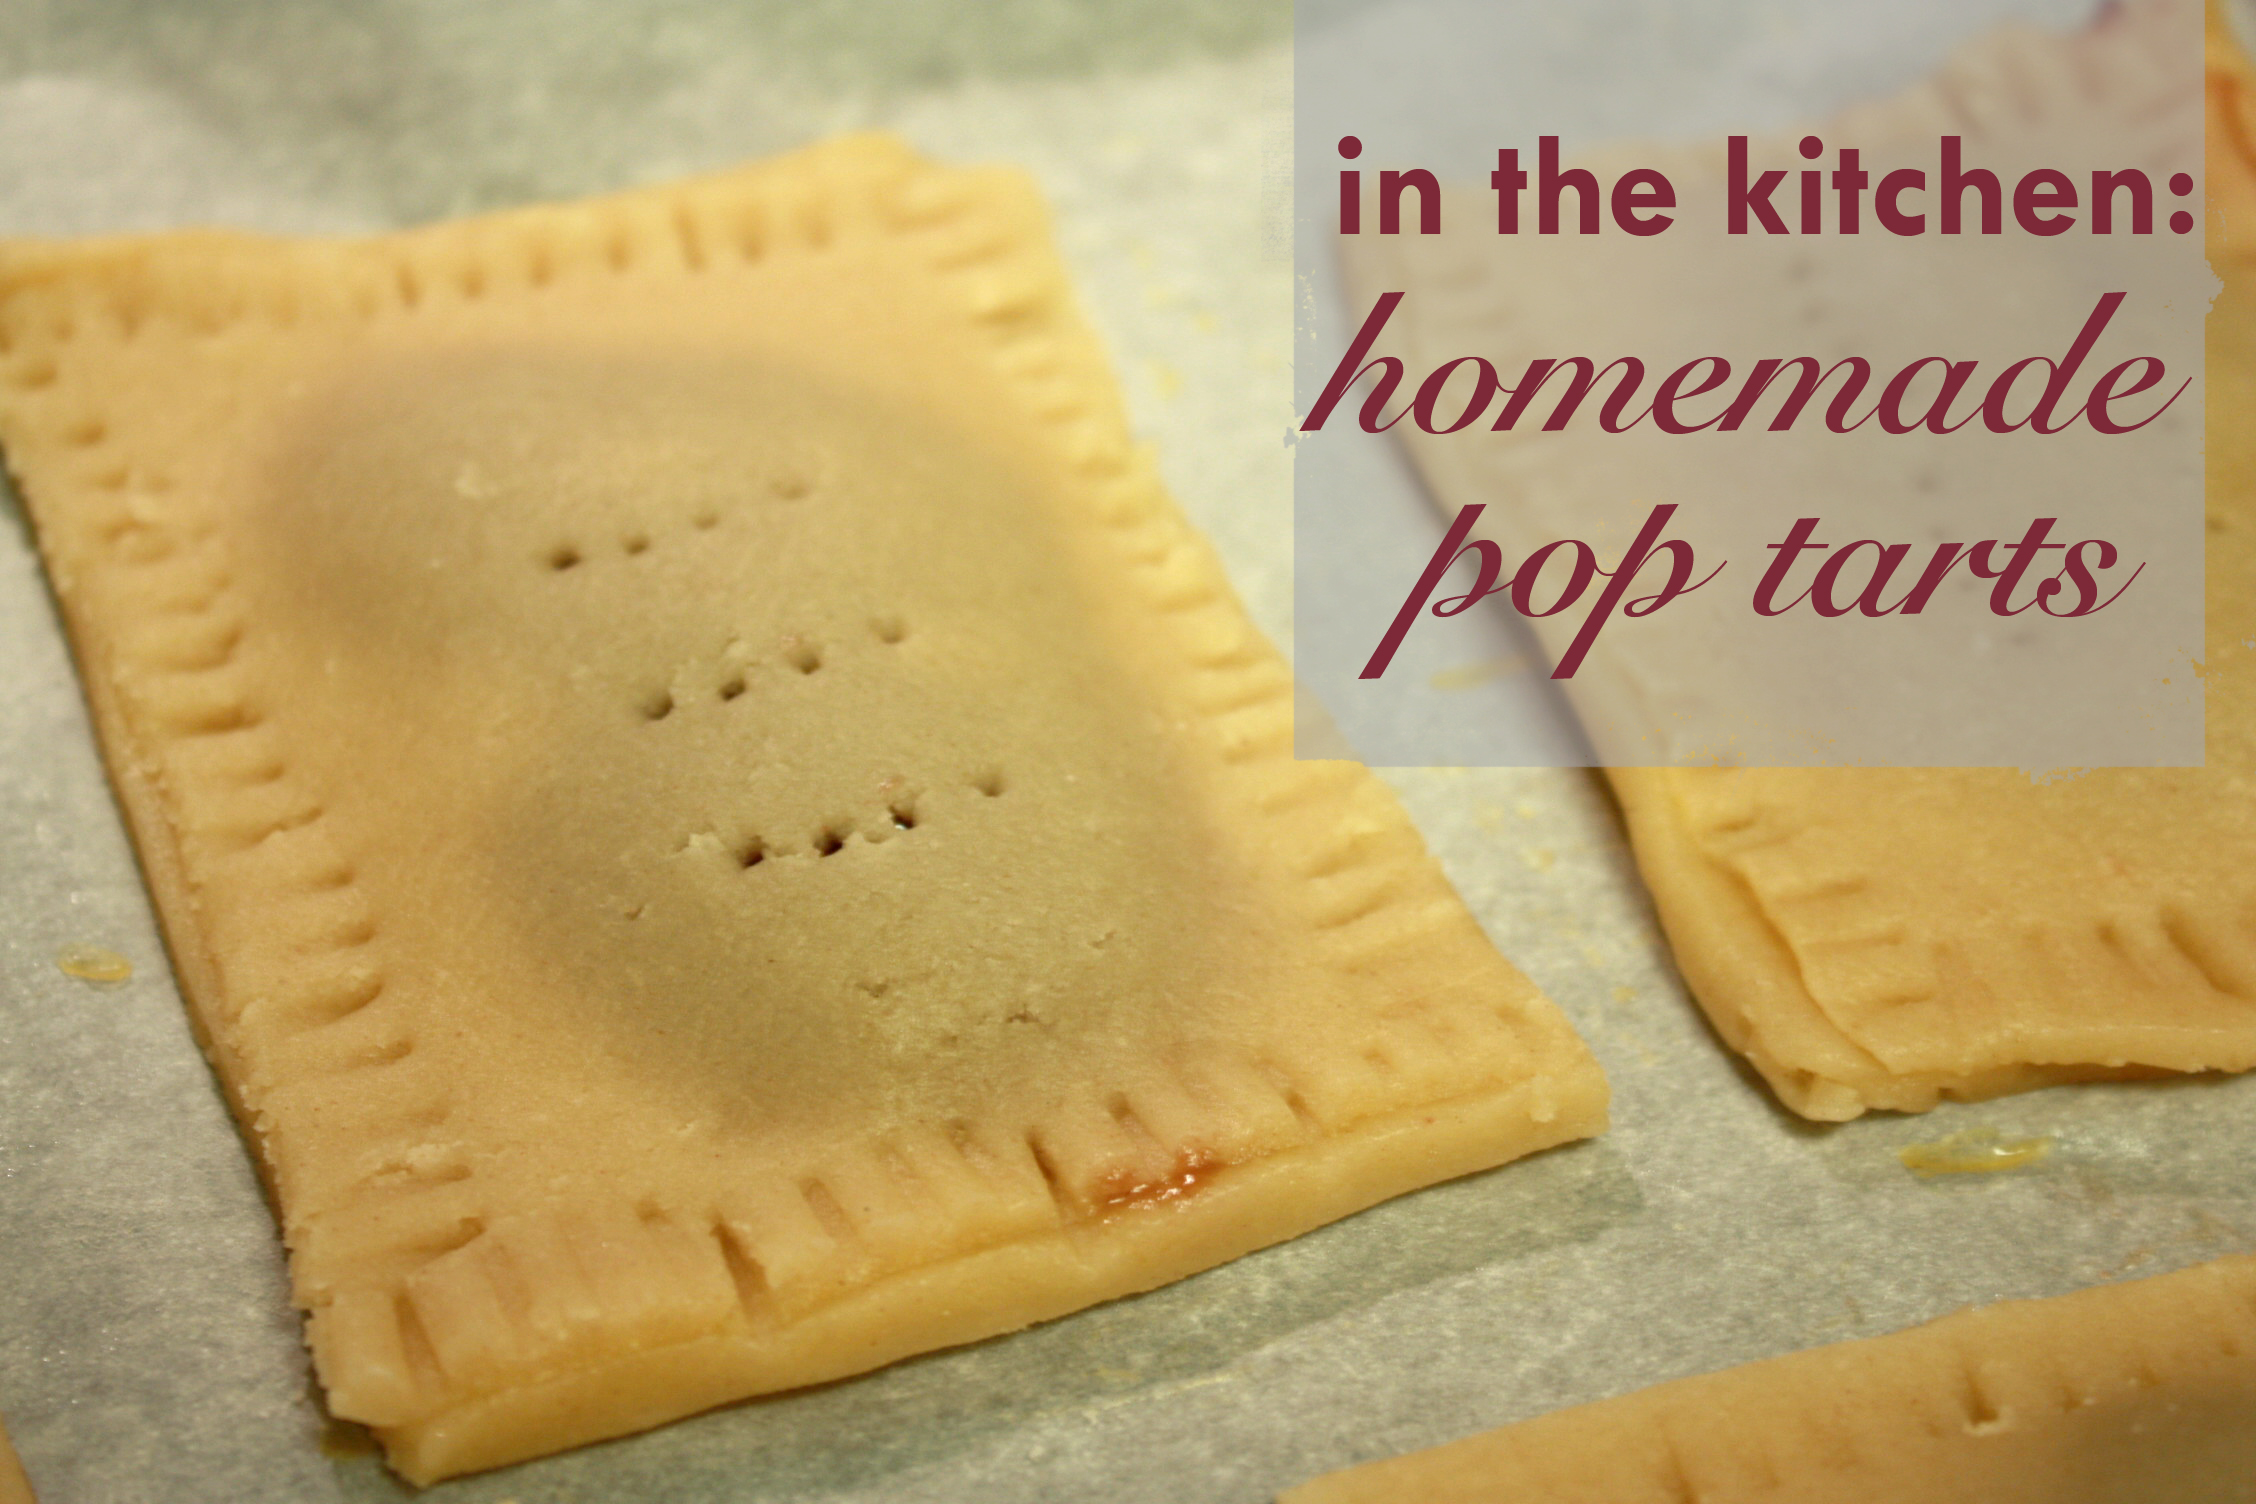 I First Read About Homemade Pop Tarts On Smitten Kitchen, And, Well, I